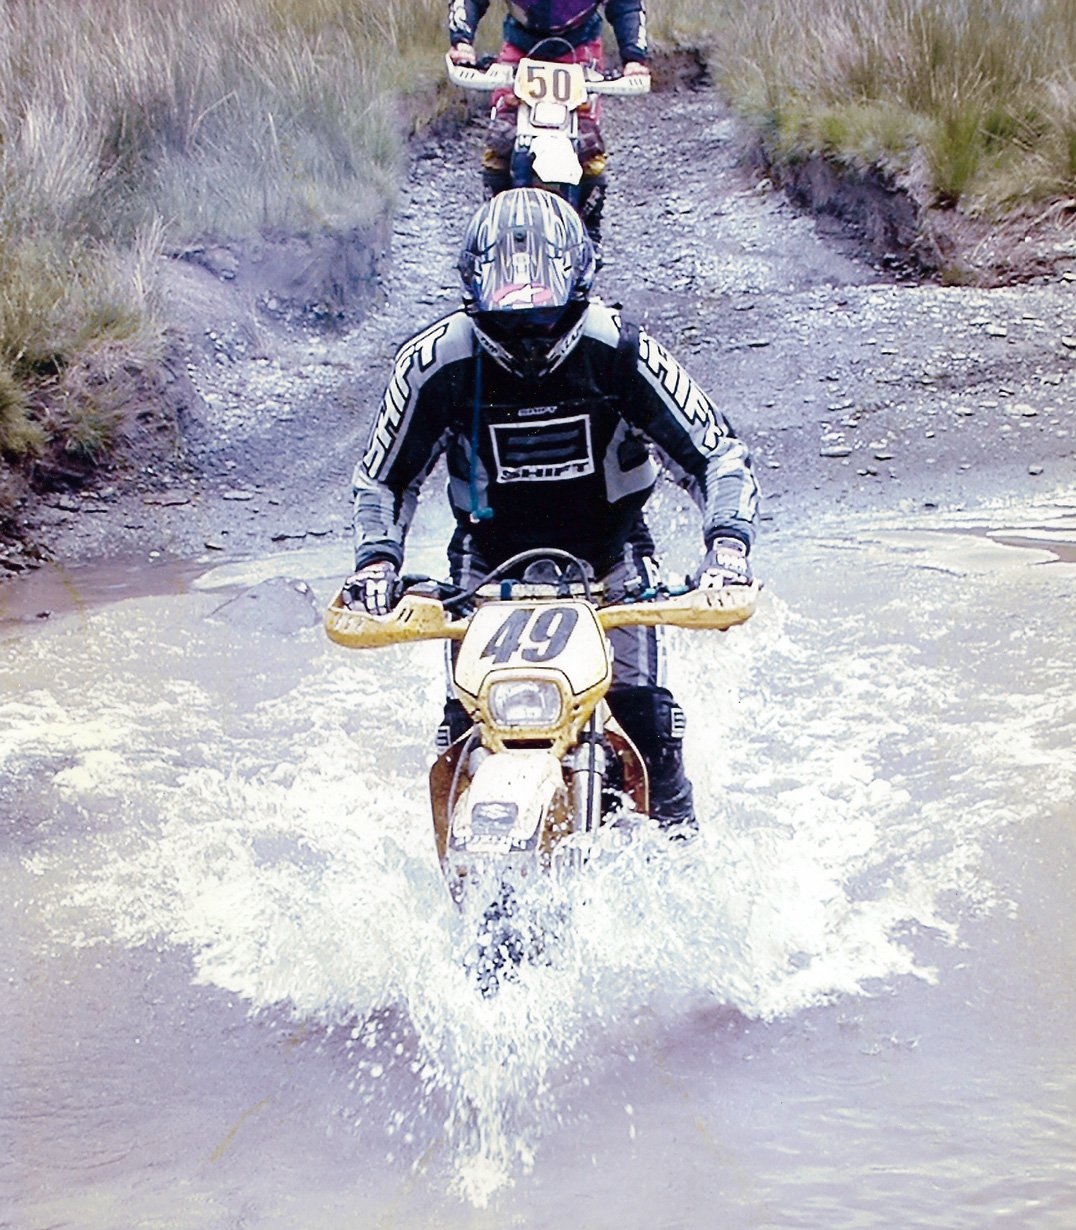 River crossing on a Suzuki